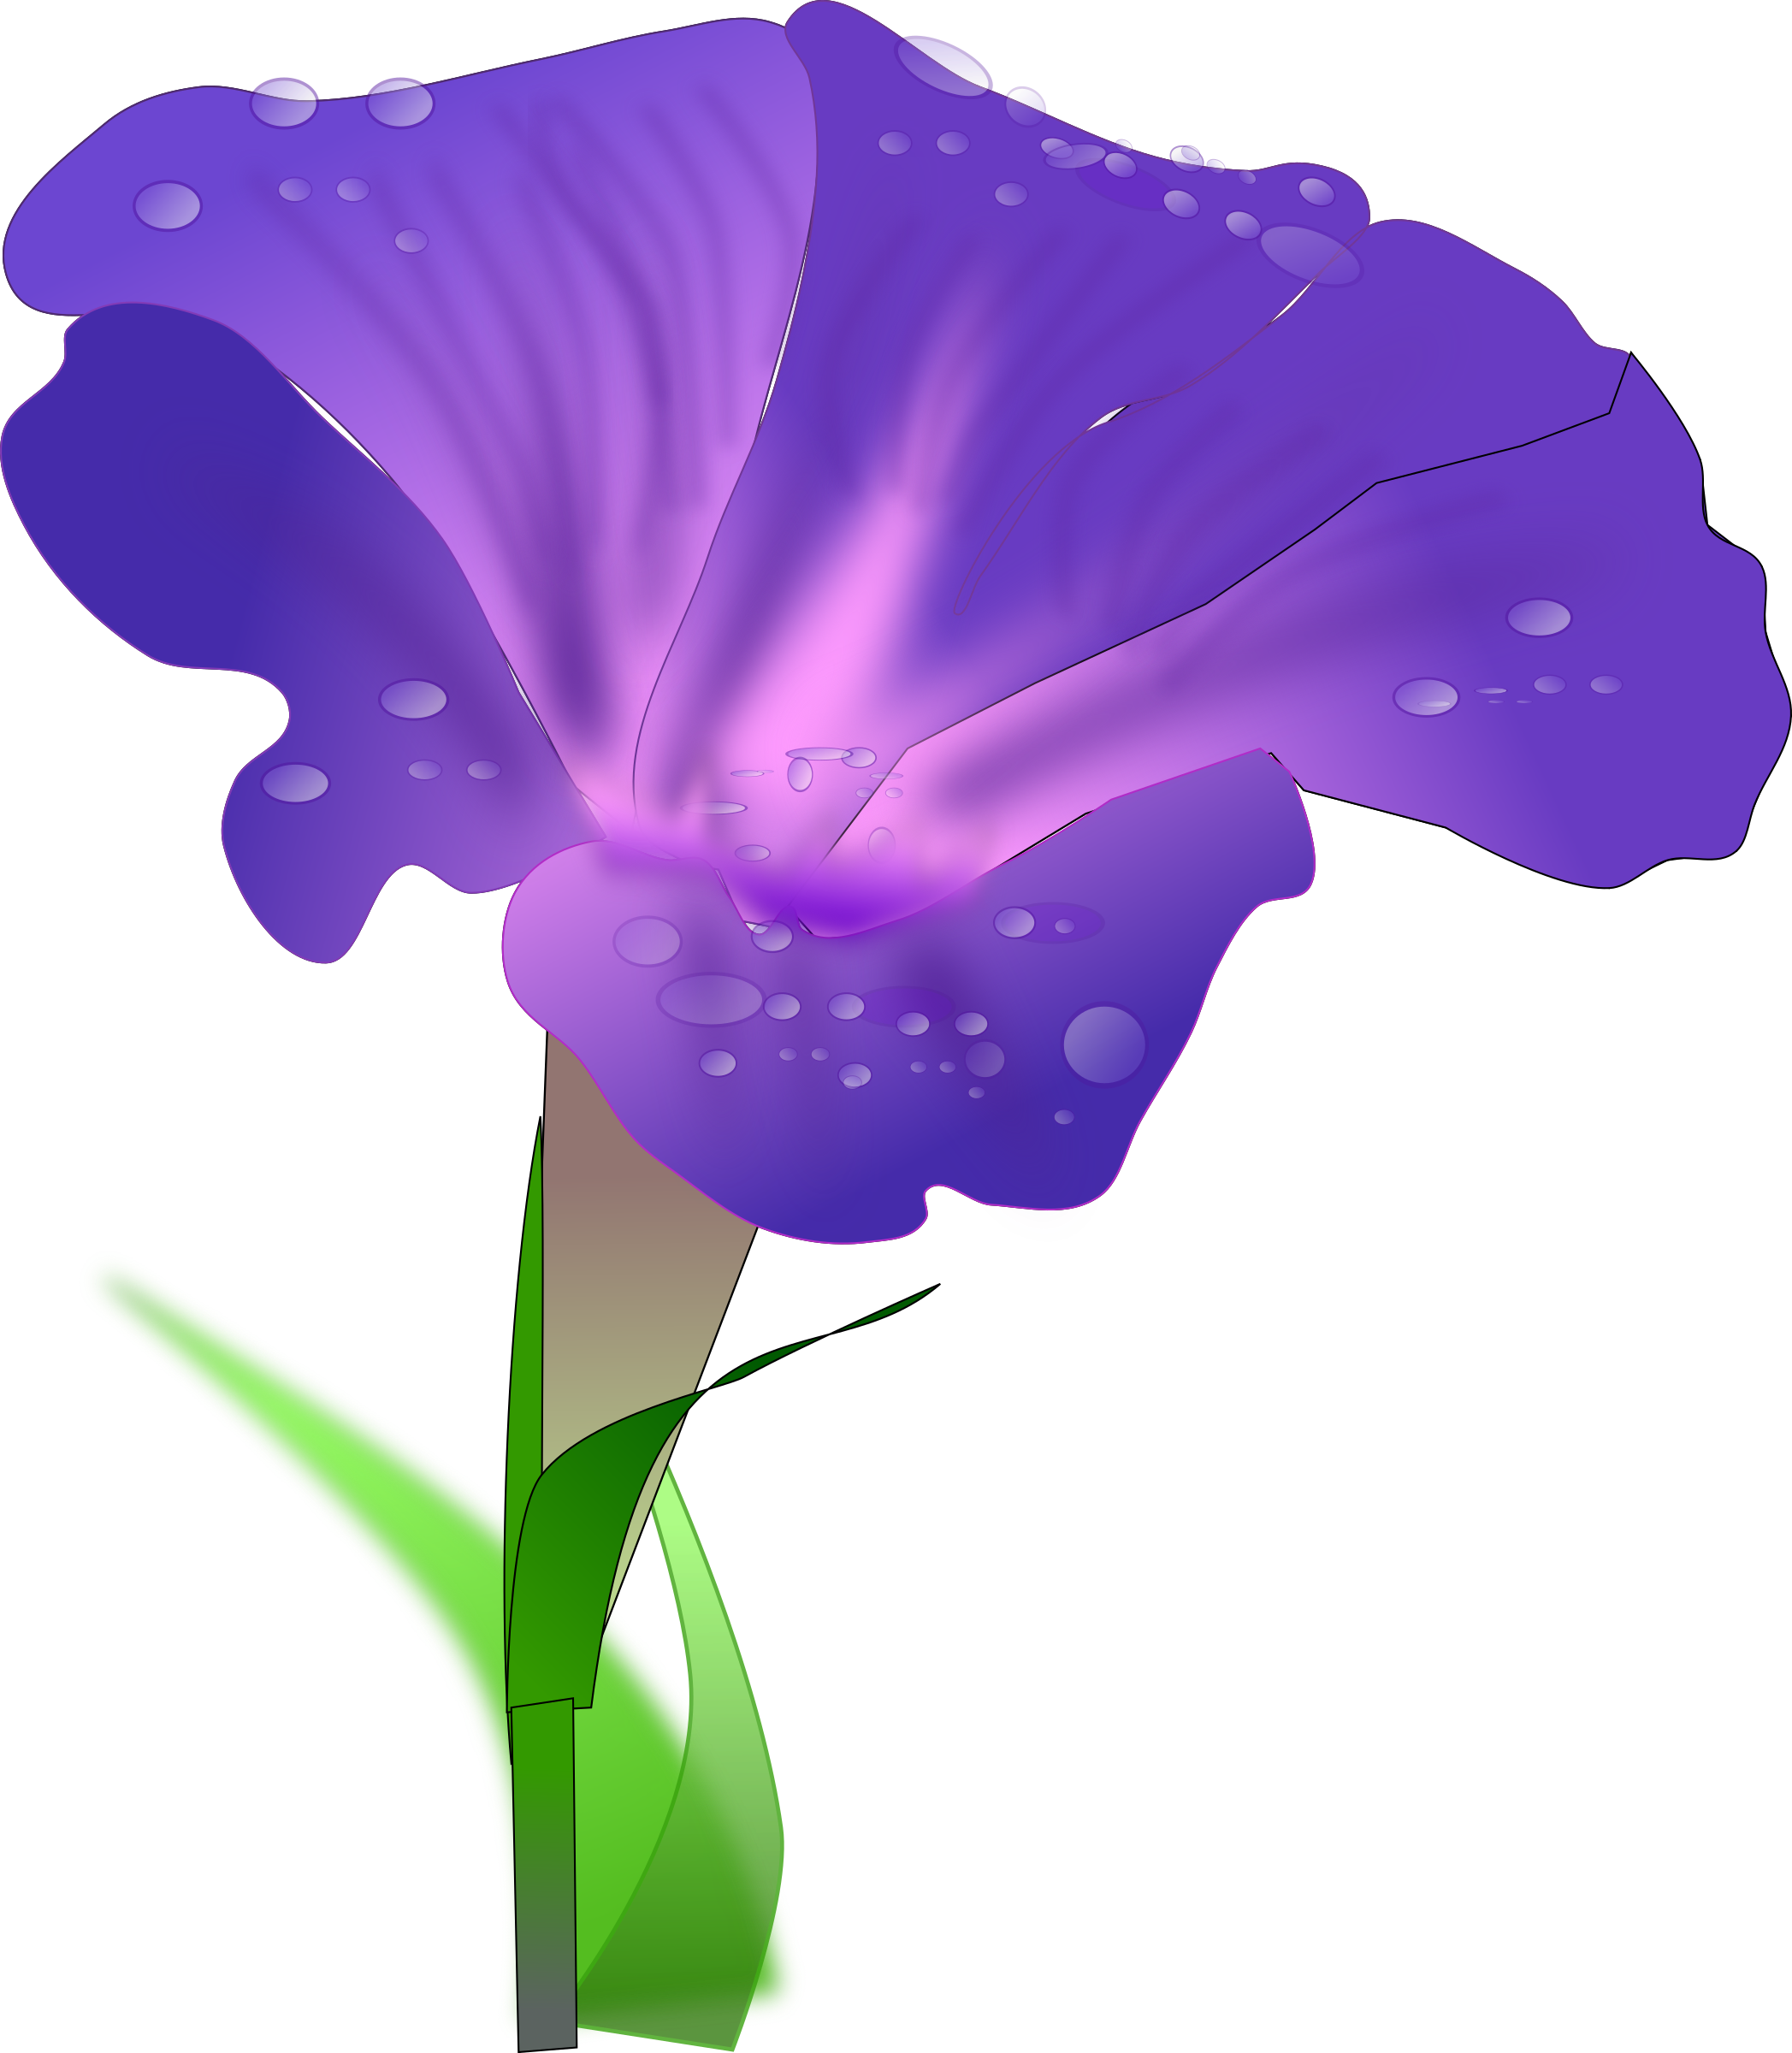 Morning Glory clipart Clipart Clip Art Images Free